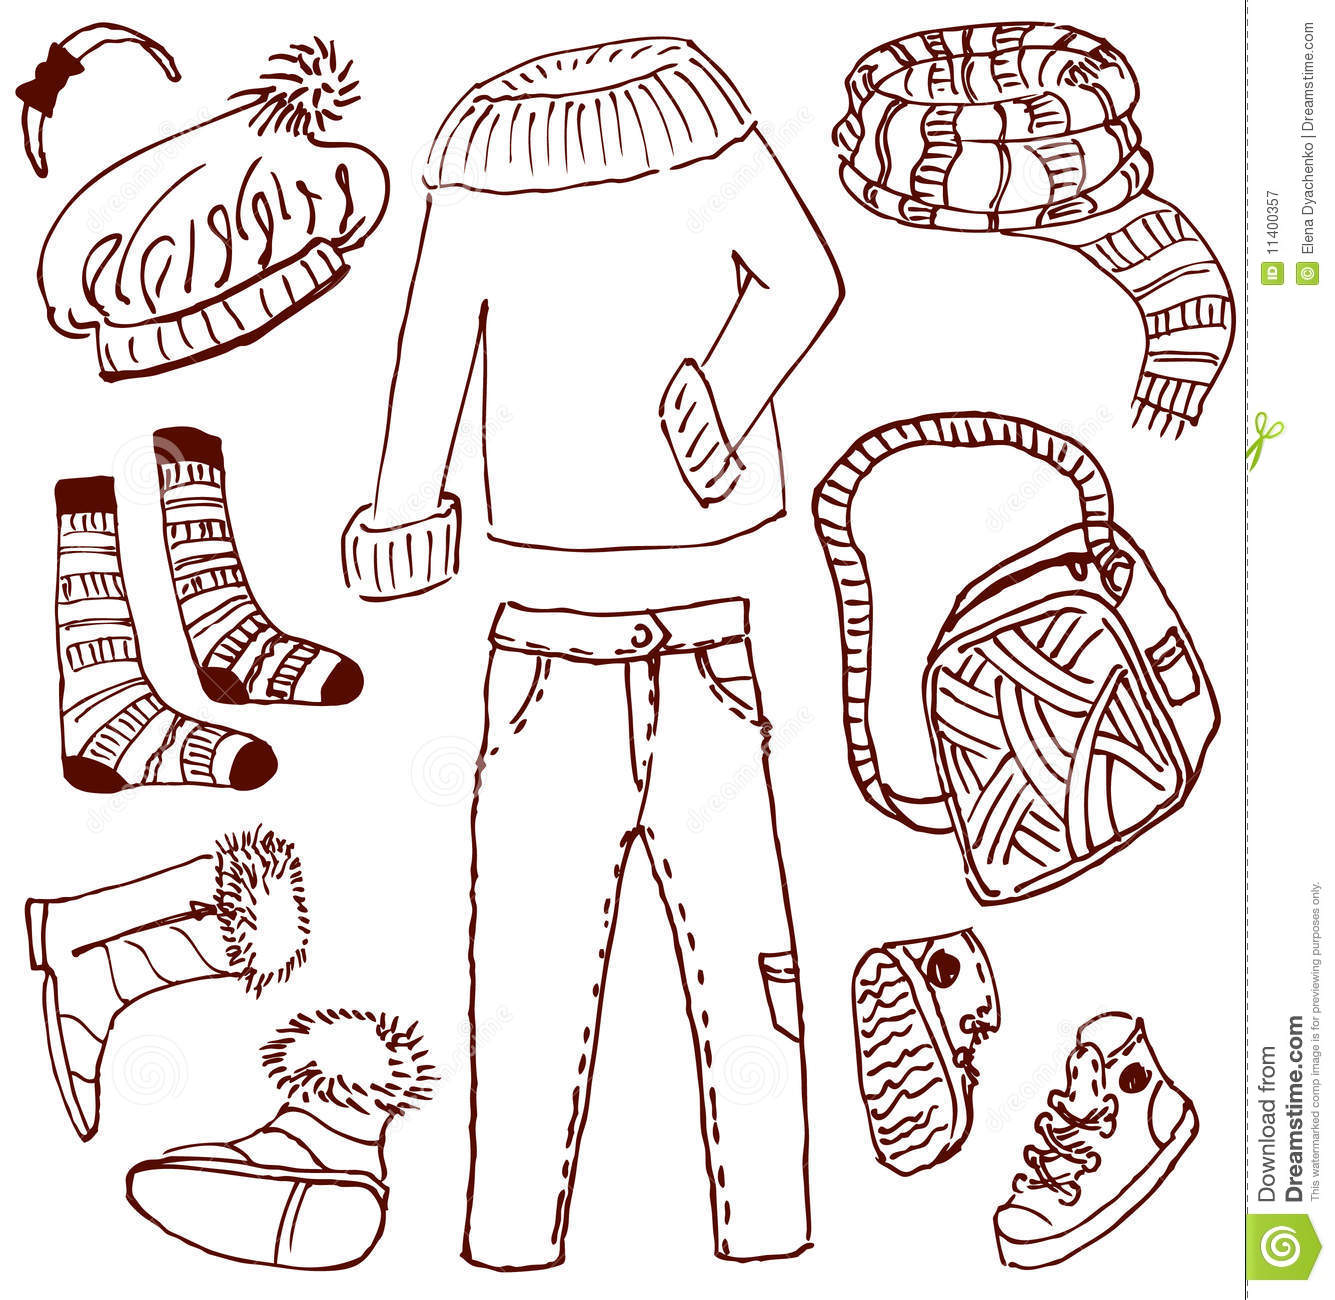 Clothes And Accessories Doodles Royalty Free Stock ...